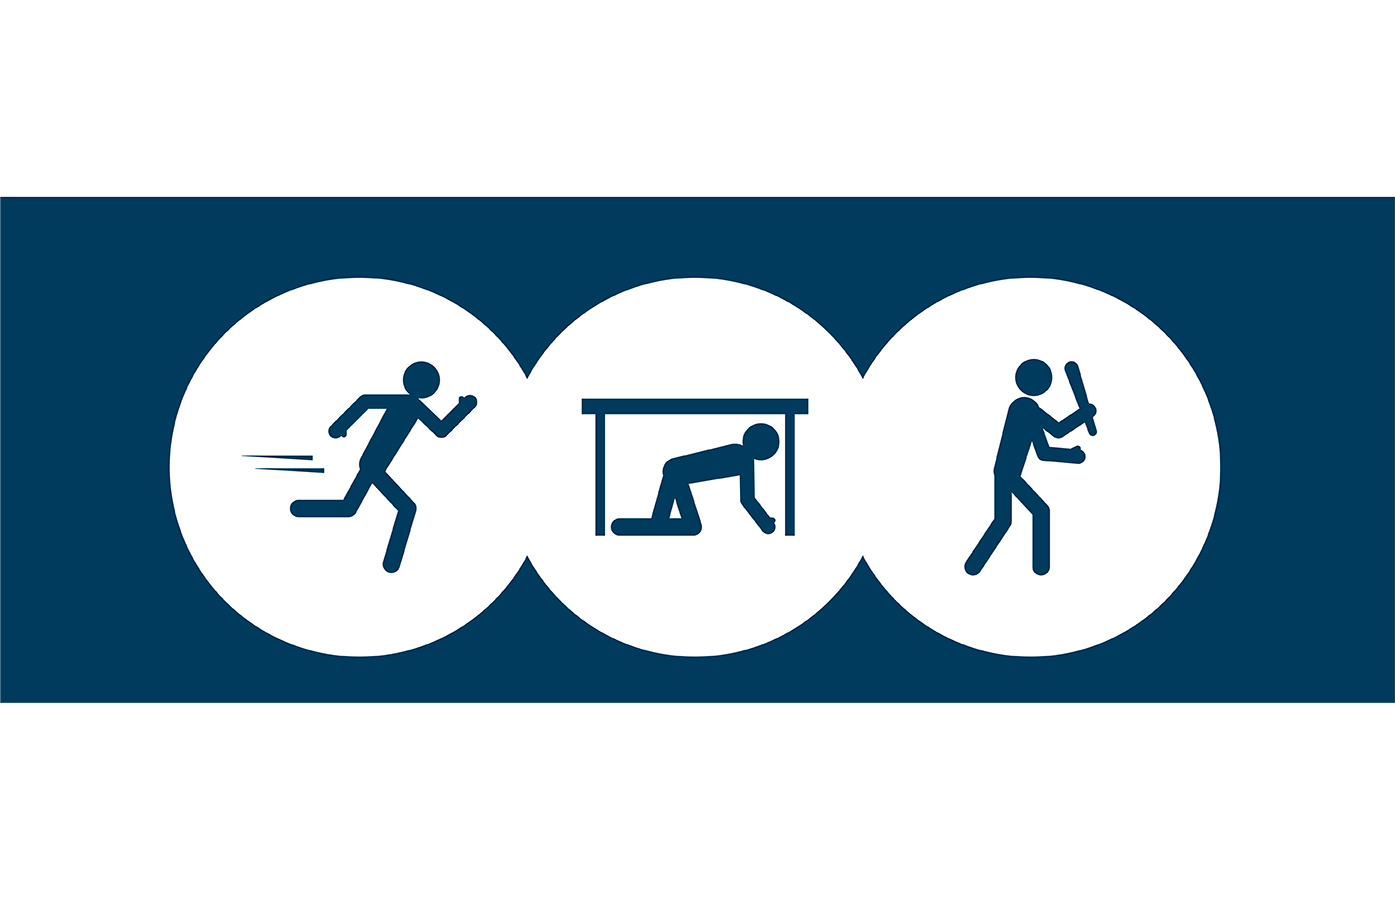 stick figures showing run, hide, fight for active shooting emergency drill